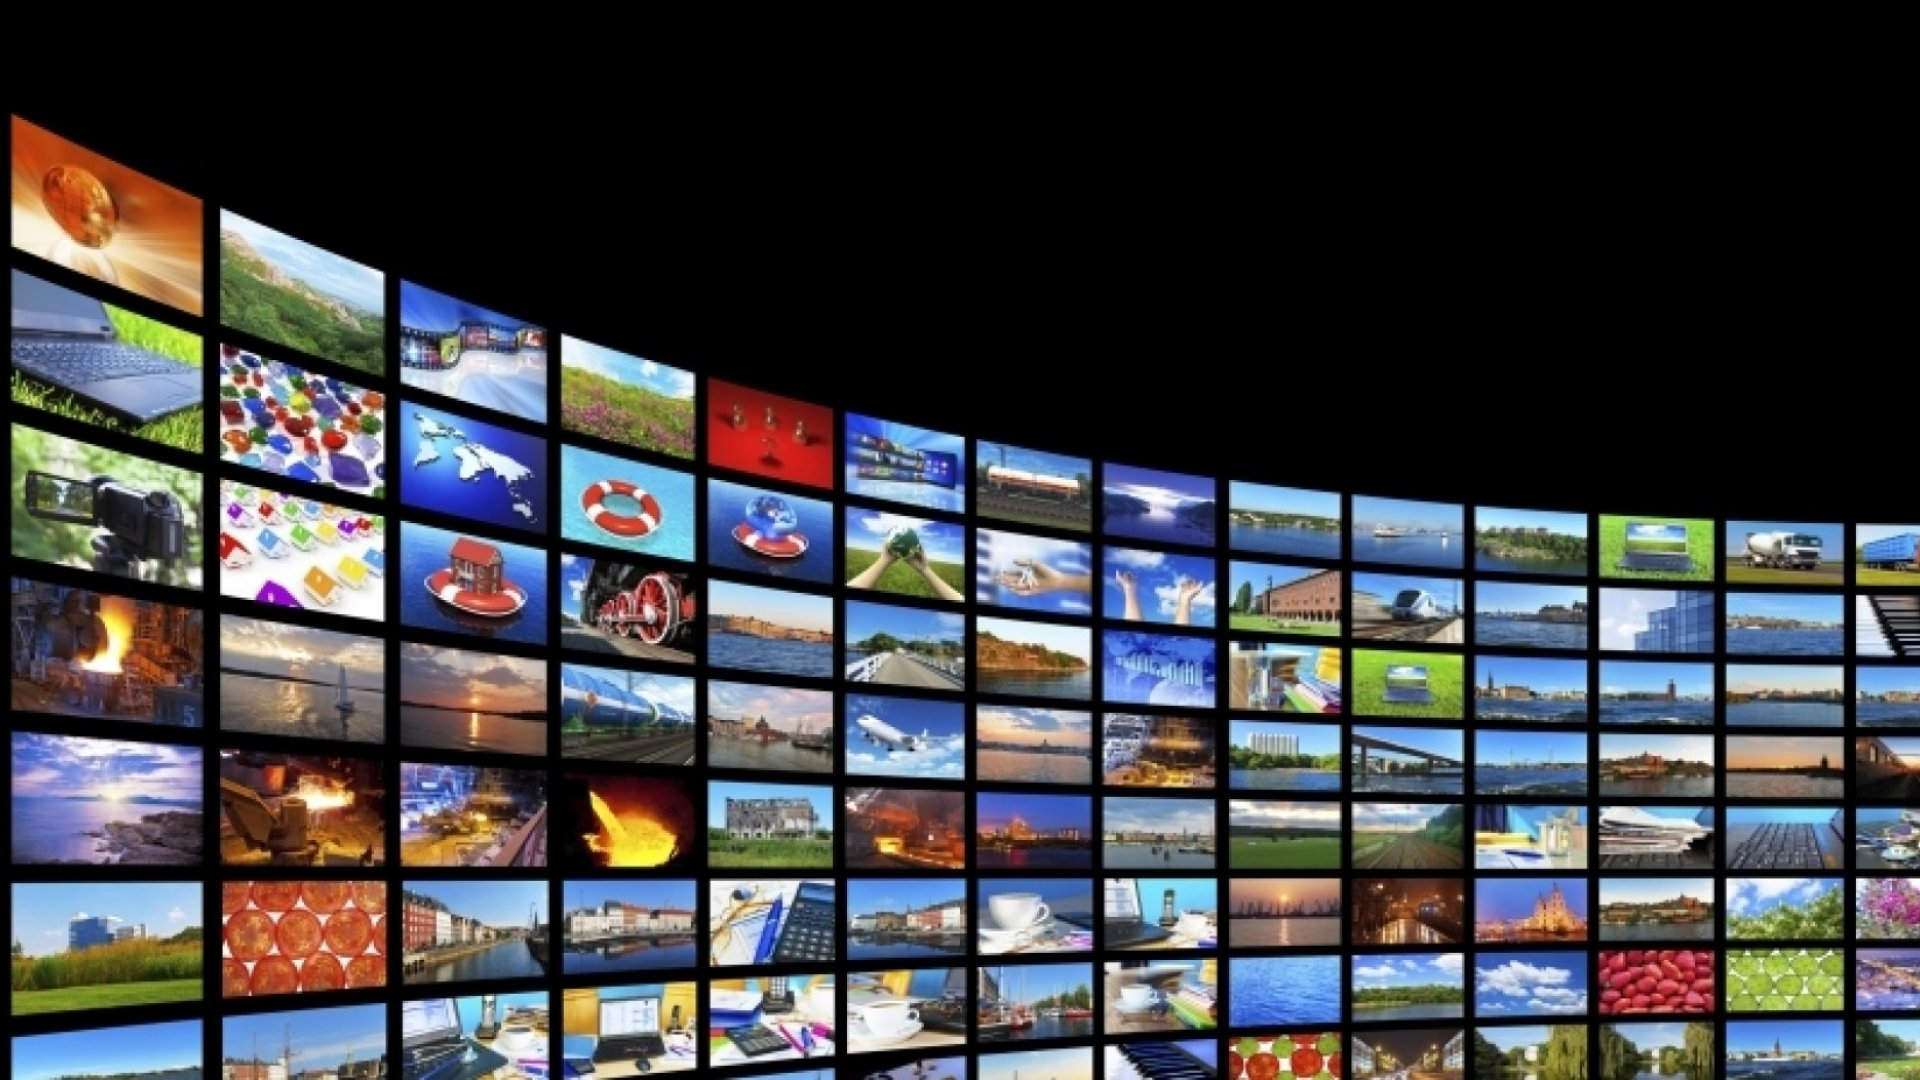 The Originator of Streaming Returns as Visual Media Remains In Flux